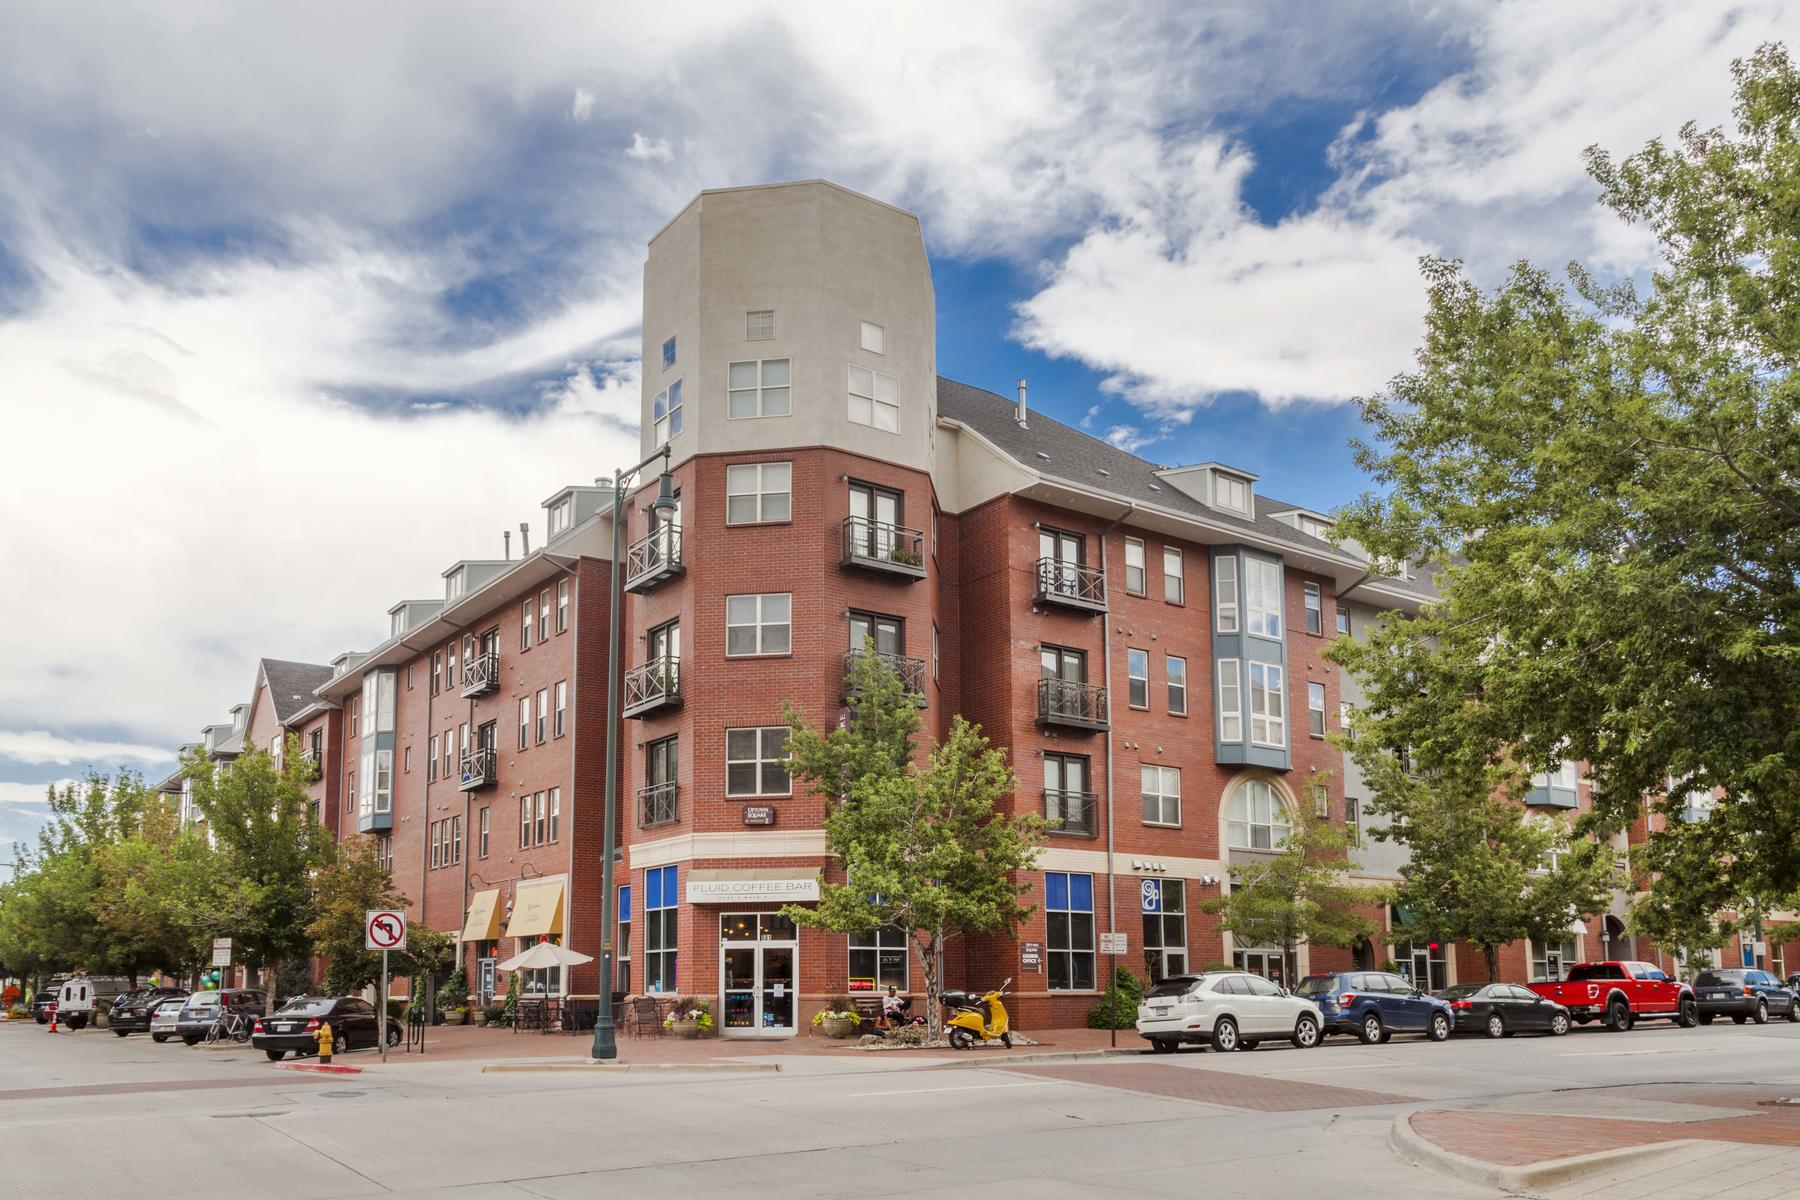 Additional photo for property listing at New Townhome With The Best City Lifestyle and Location Available! 2200 Tremont Place #7 Denver, Colorado 80205 United States